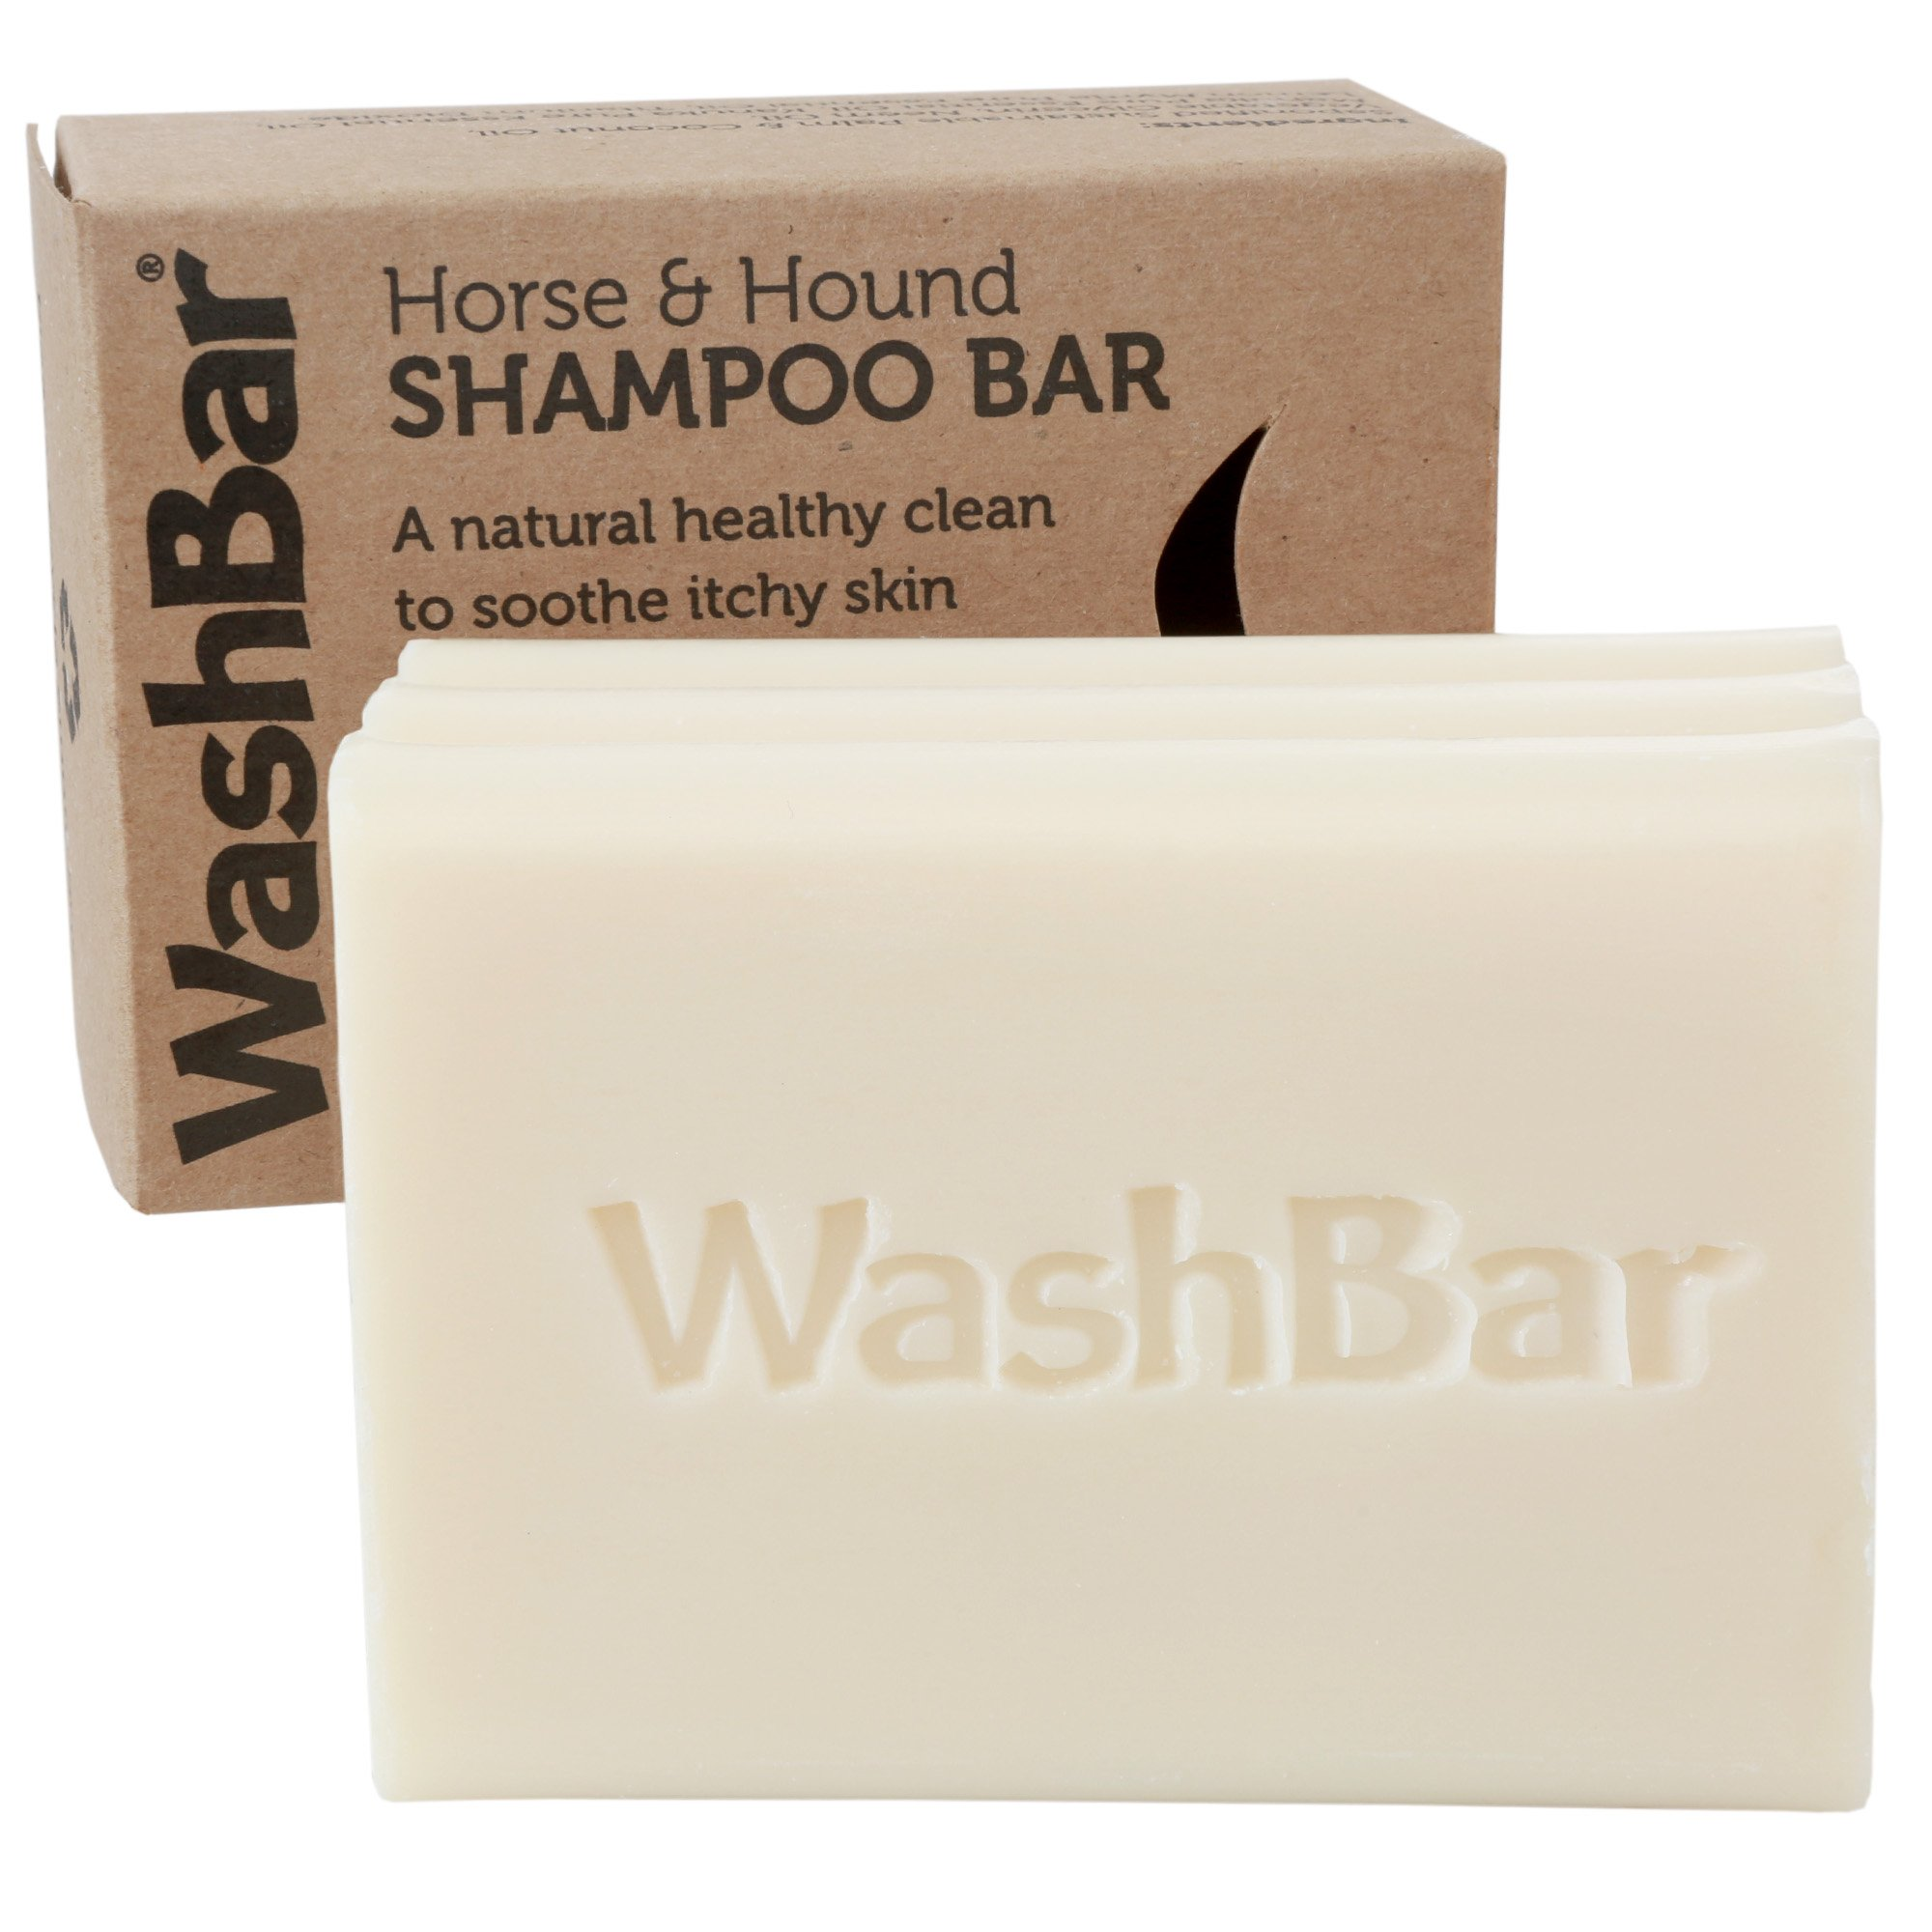 Natural Horse Shampoo Bar, Mane and Tail Shampoo, Whitens, Brightens All Colored Coats, Long-Lasting and Easier to Use Than Liquid Shampoo with No Plastic Waste, 6.5oz